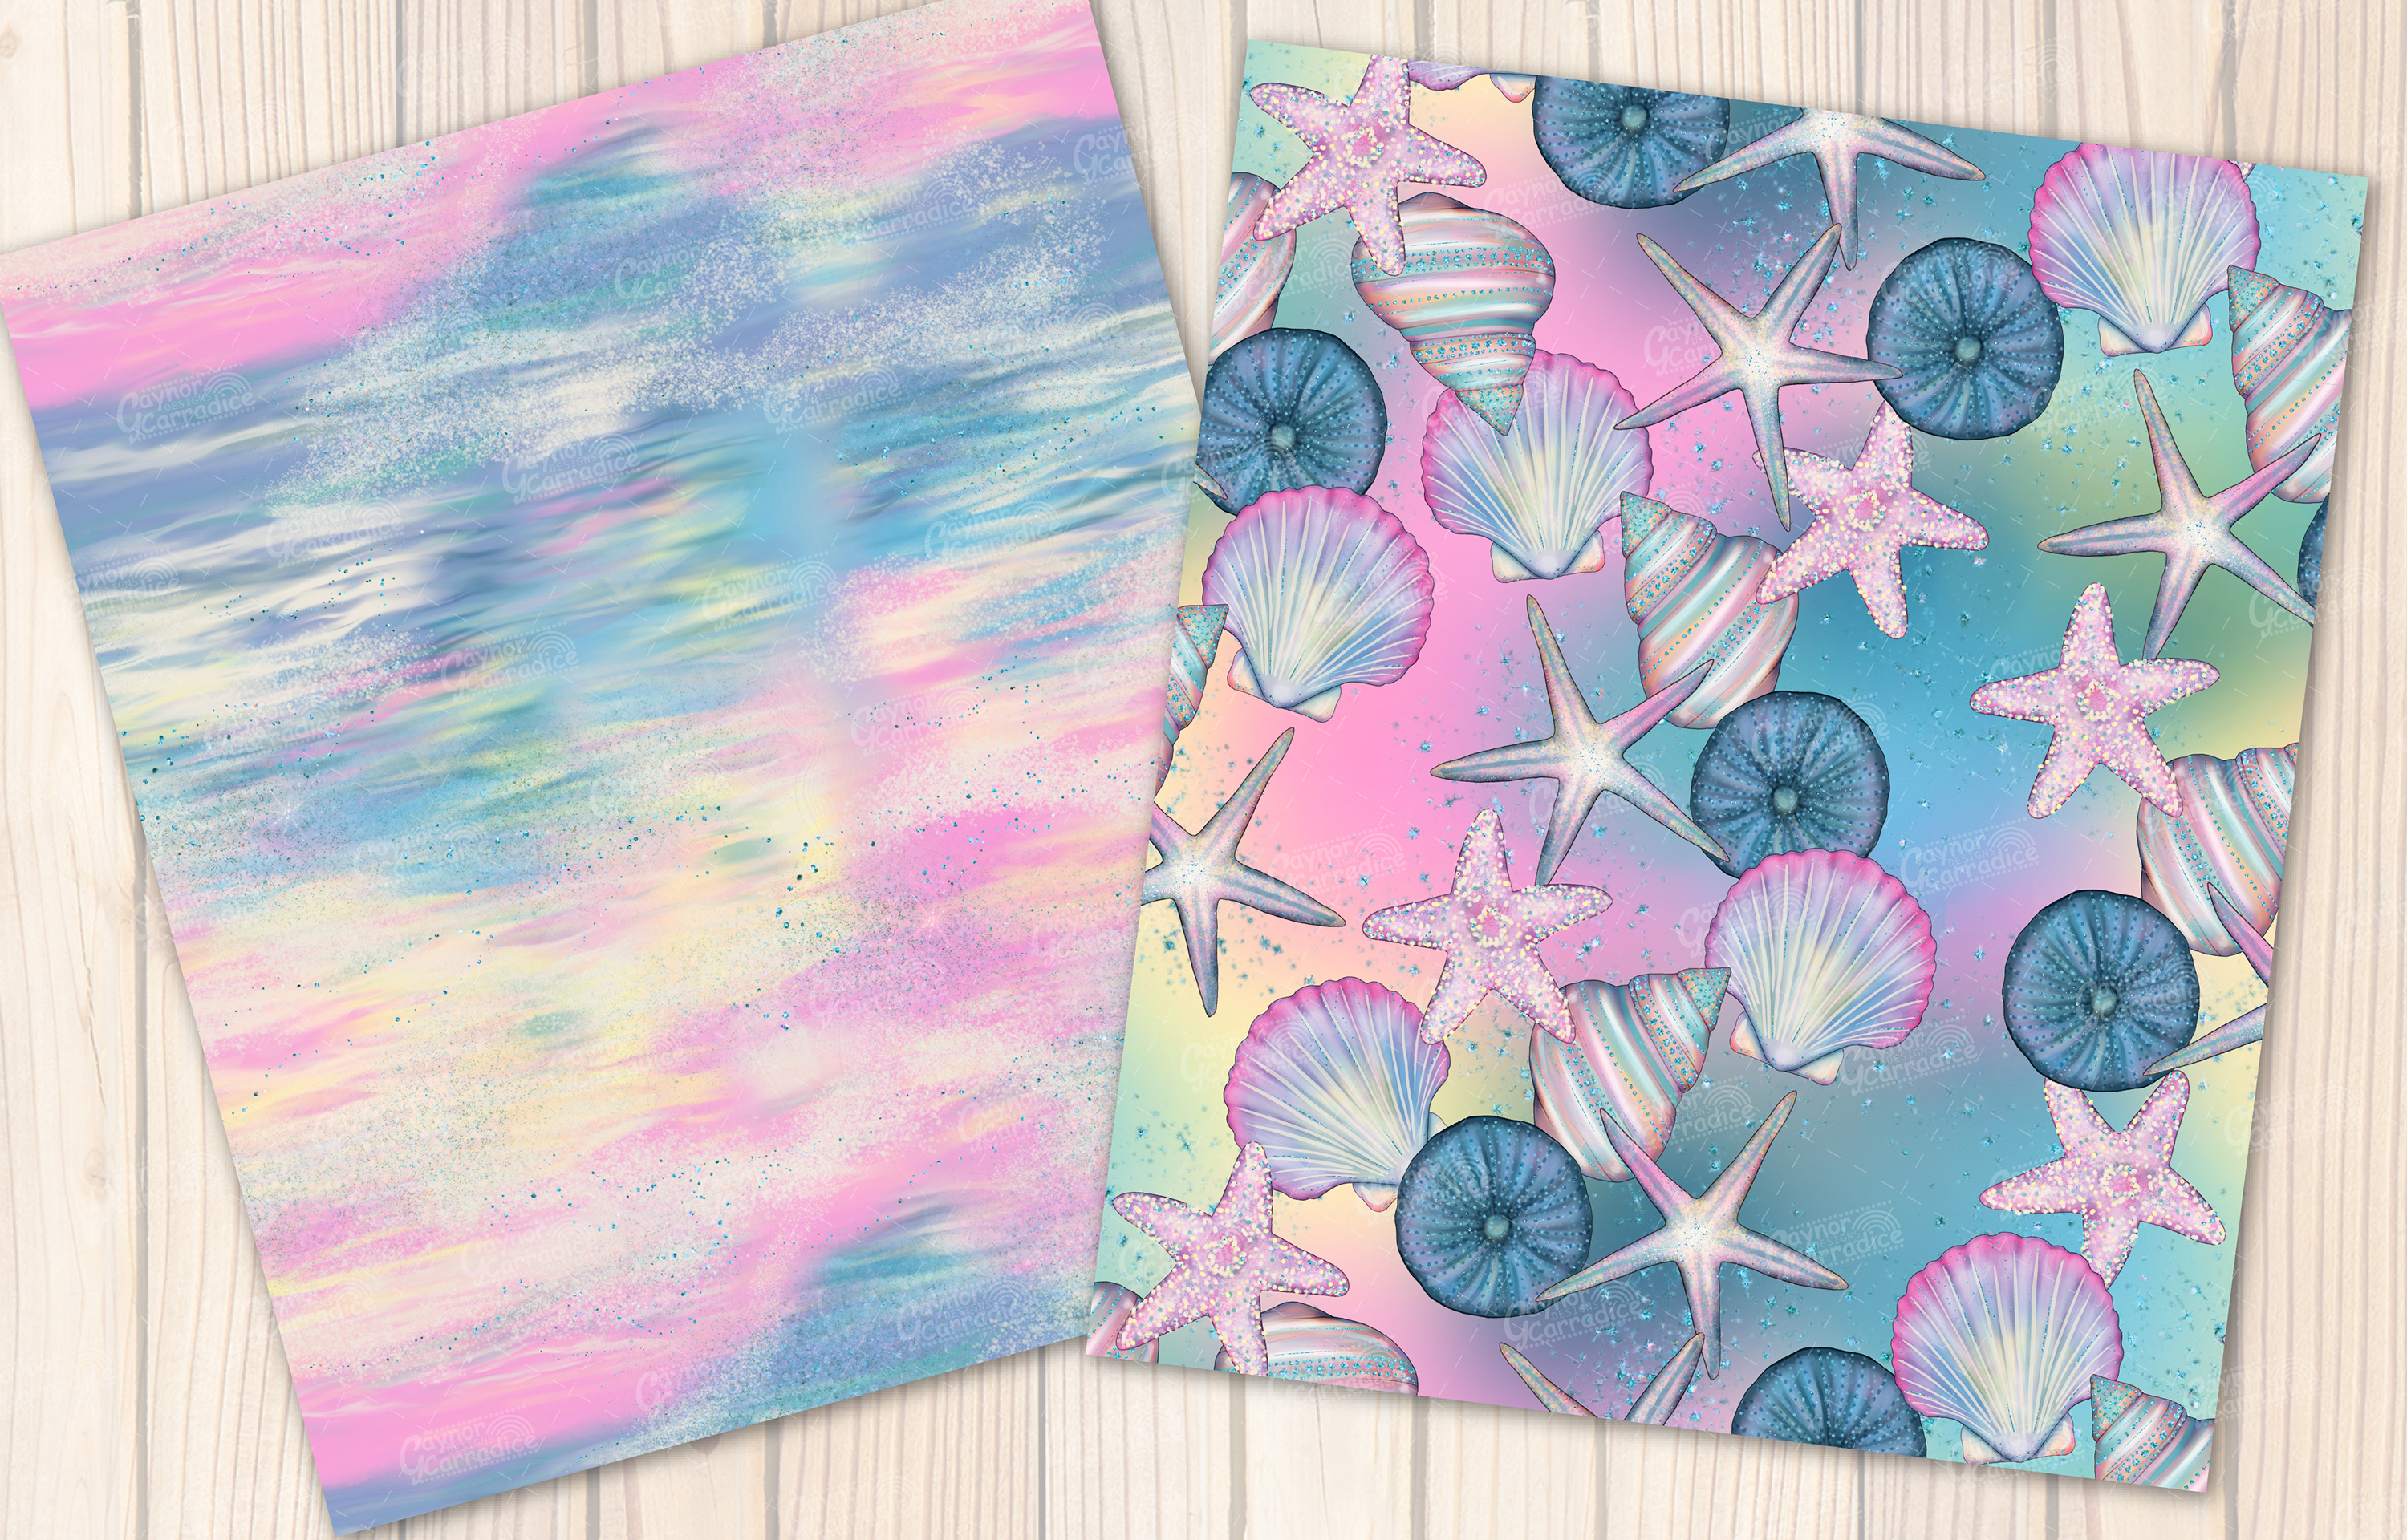 I washed up like this - Summer mermaid Seamless Patterns example image 7